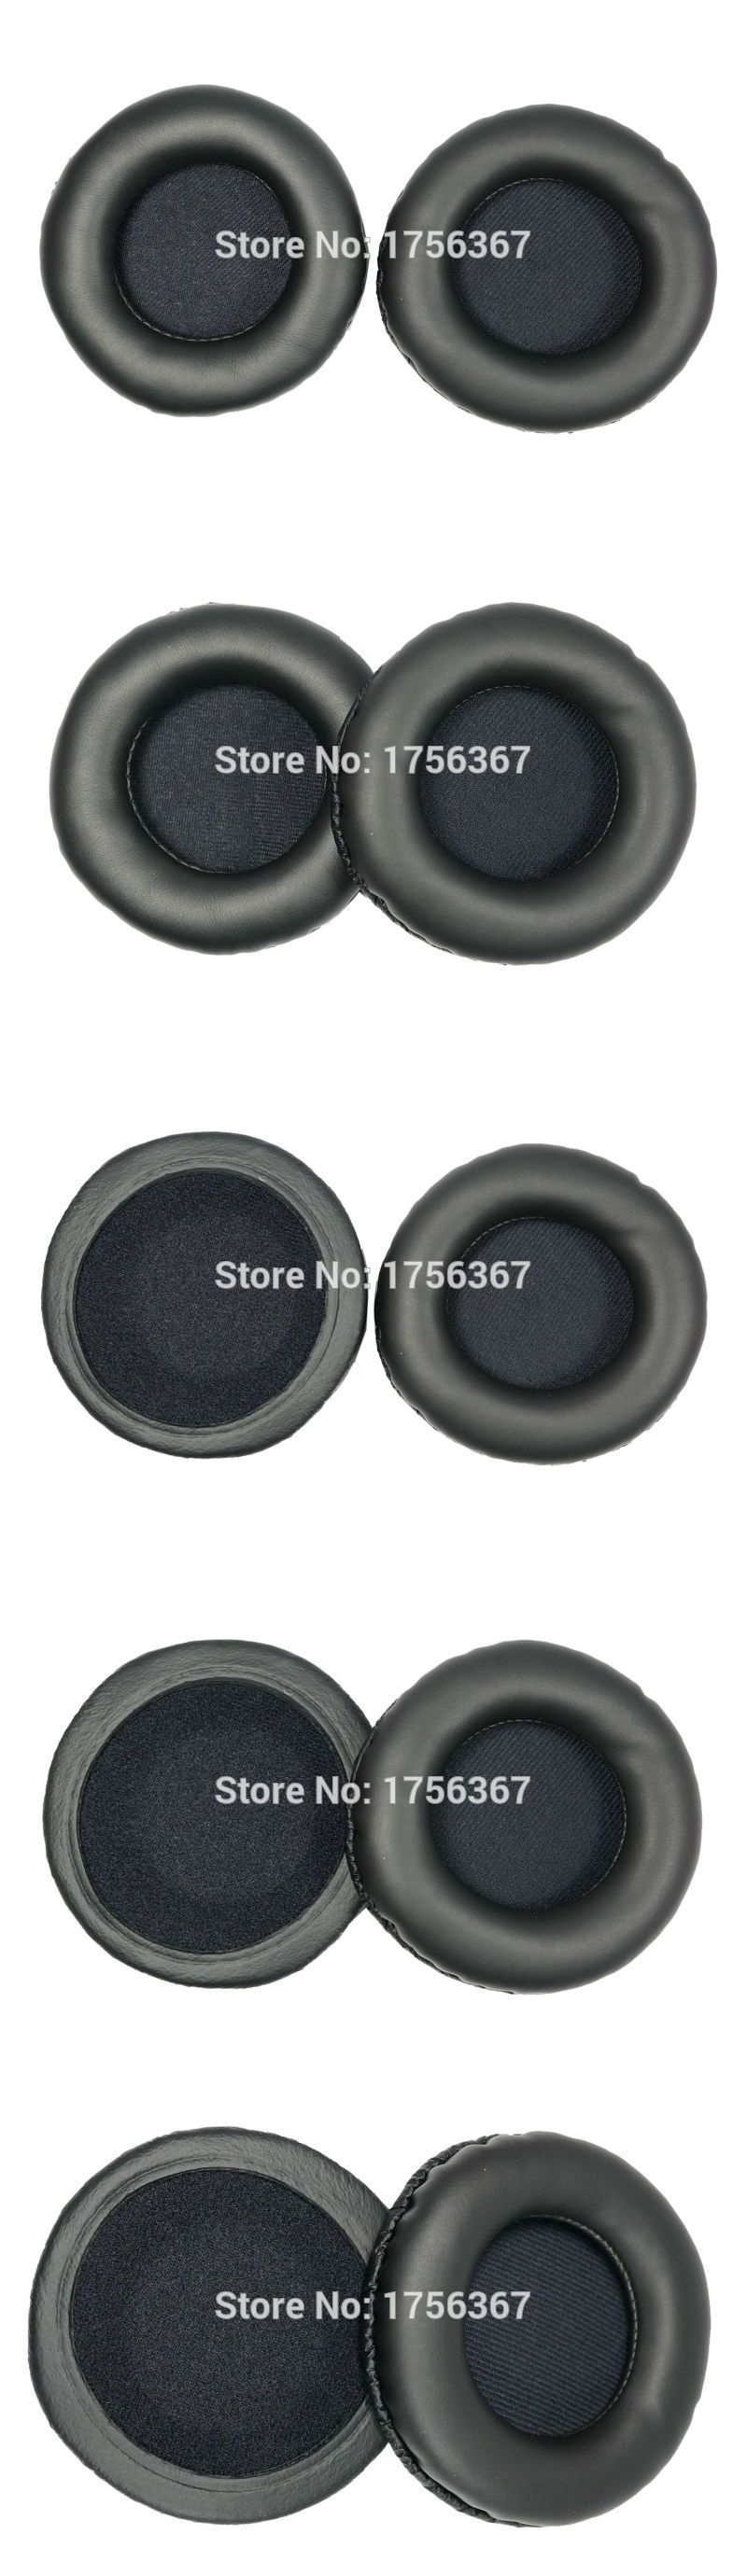 e003b71a870 Ear pads replacement cover for Skullcandy HESH HESH 1.0 headphones(headset  cushion) Nondestructive quality